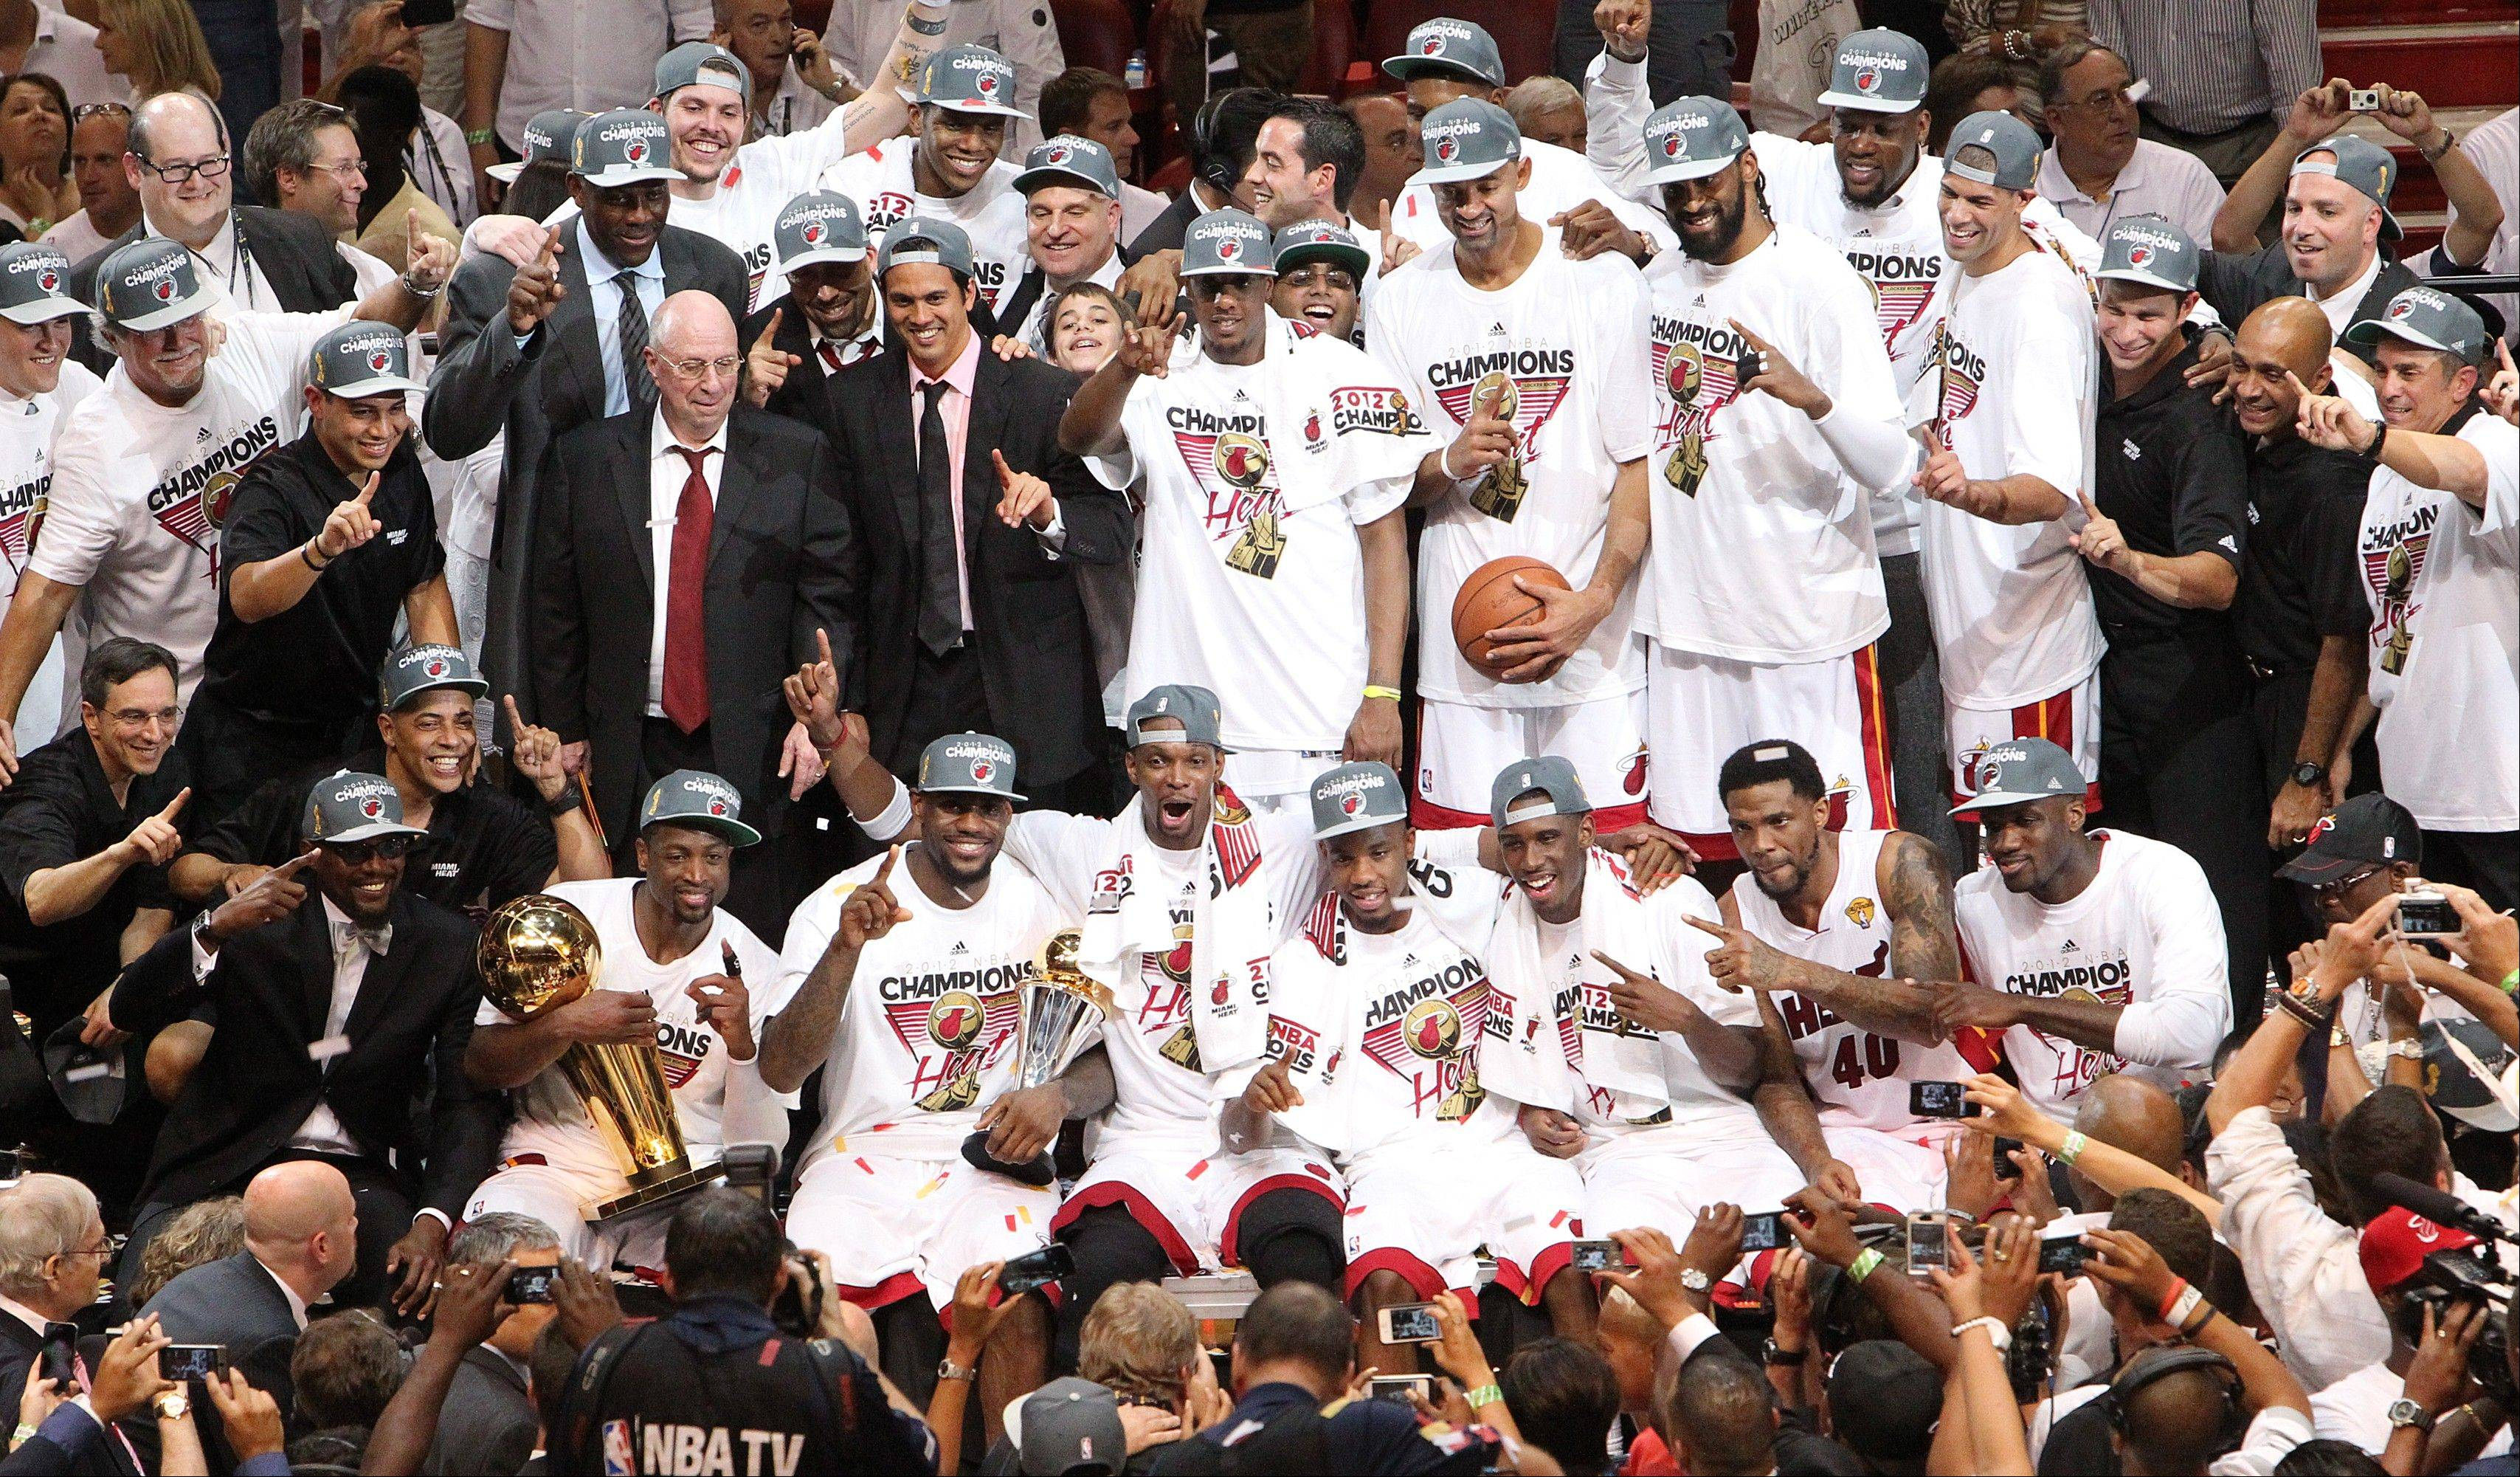 The Miami Heat celebrate Thursday after they defeated the Oklahoma City Thunder in game 5 of the NBA Finals at the American Airlines Arena in Miami.